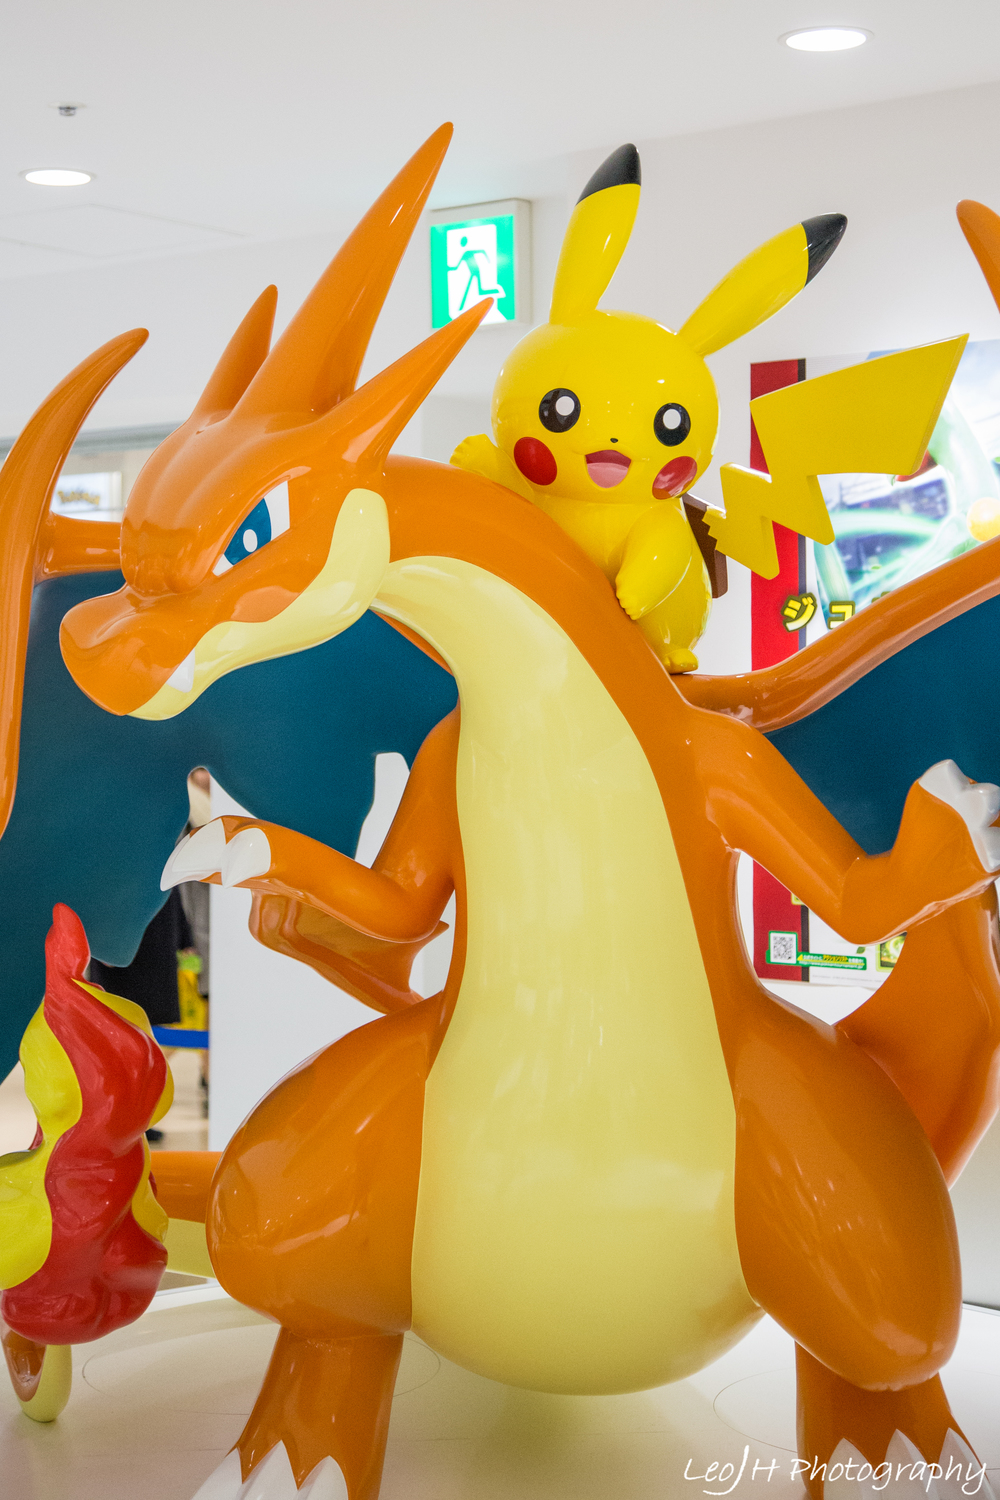 My childhood is back! Charizard and Pikachu at the Pokemon Center